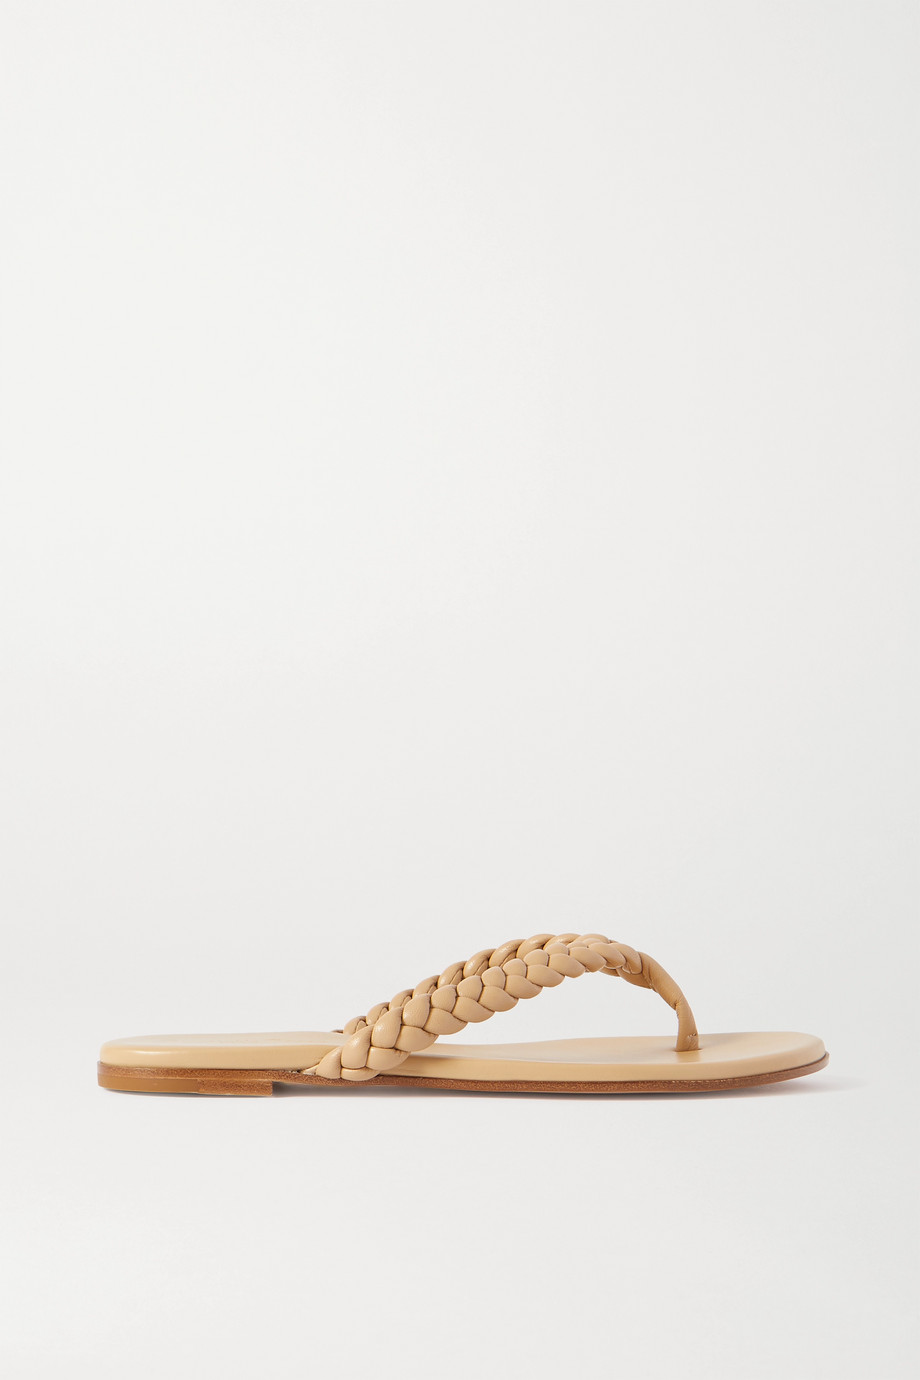 GIANVITO ROSSI Braided leather flip flops